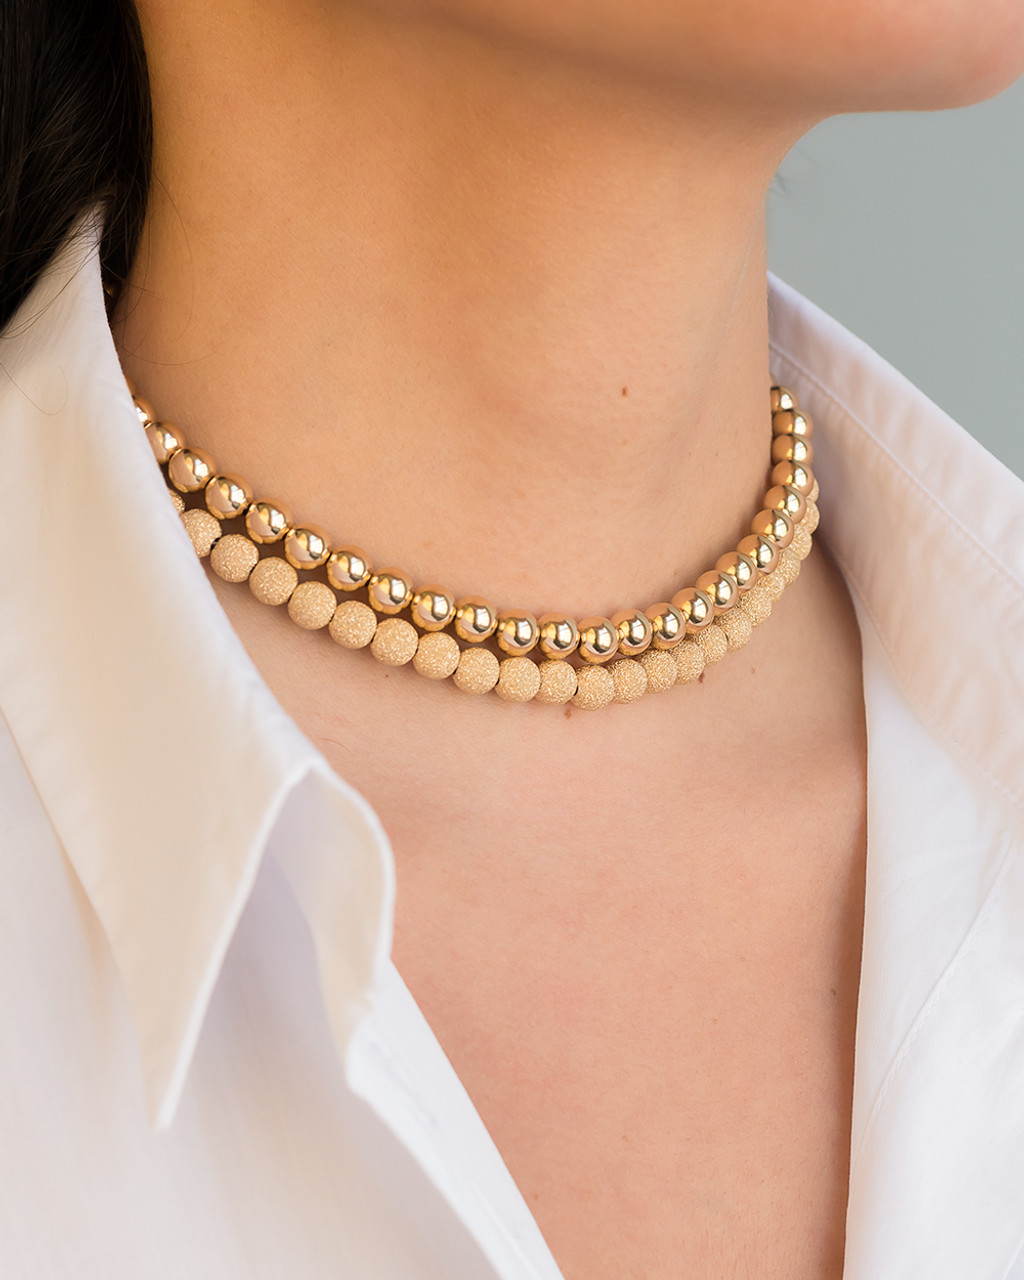 14k gold 5mm bead necklace